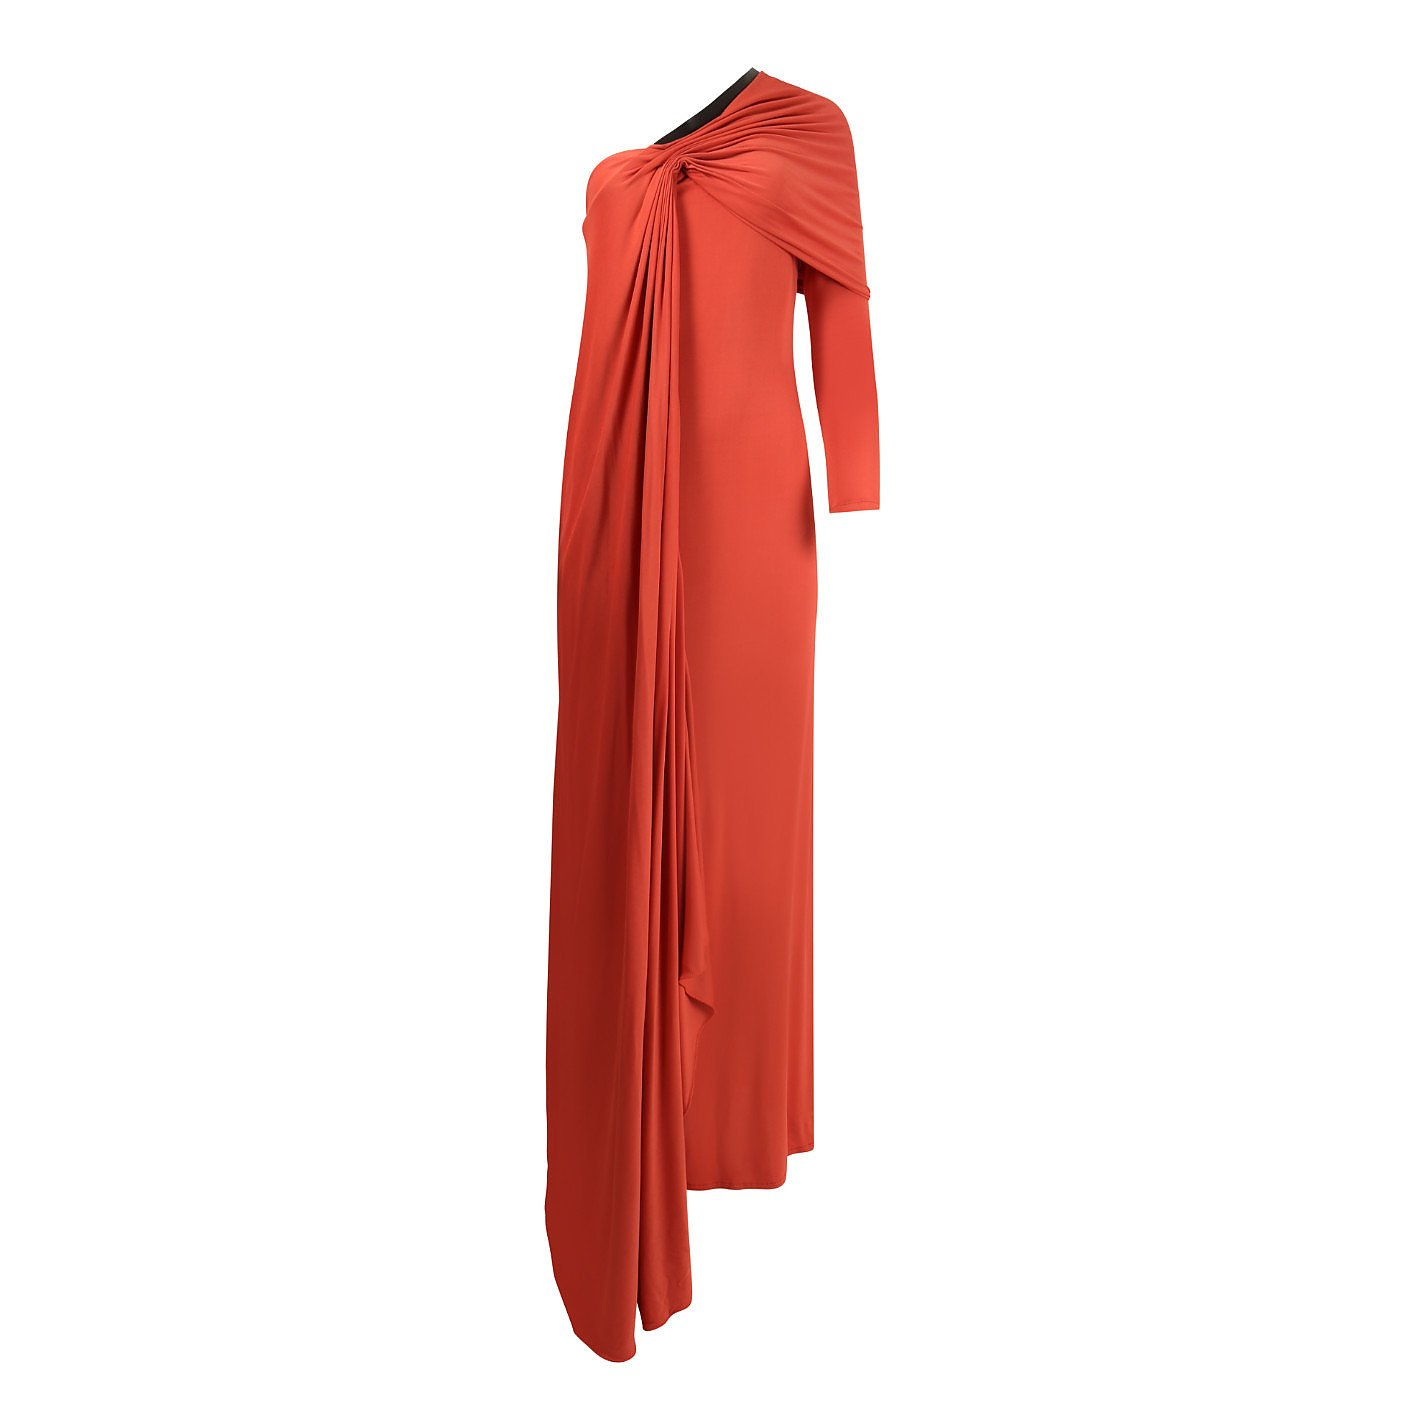 Amanda Wakeley Draped One Shoulder Gown